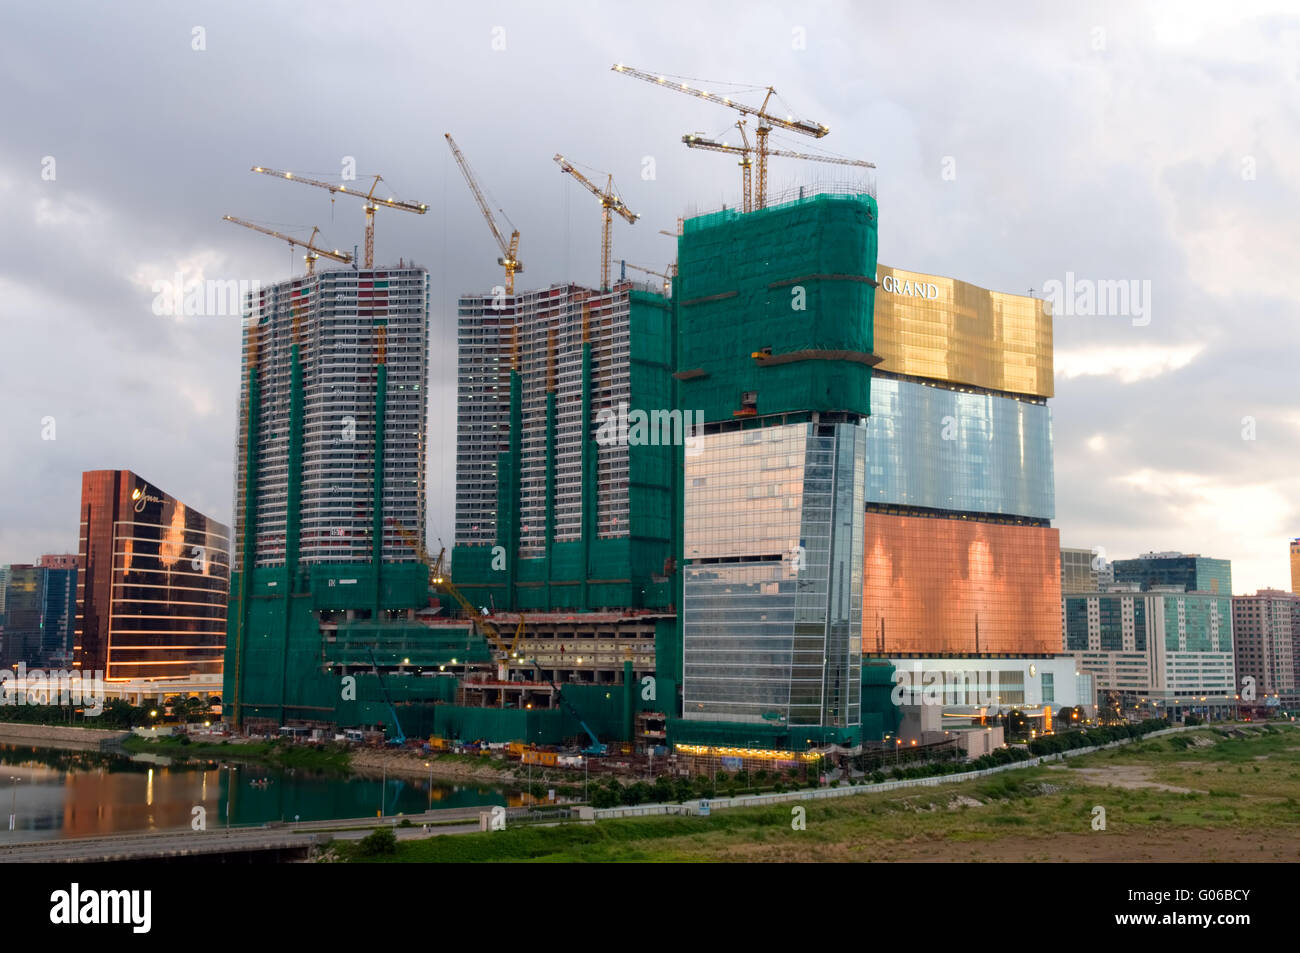 Construction site of edifice beside MGM casino - Stock Image